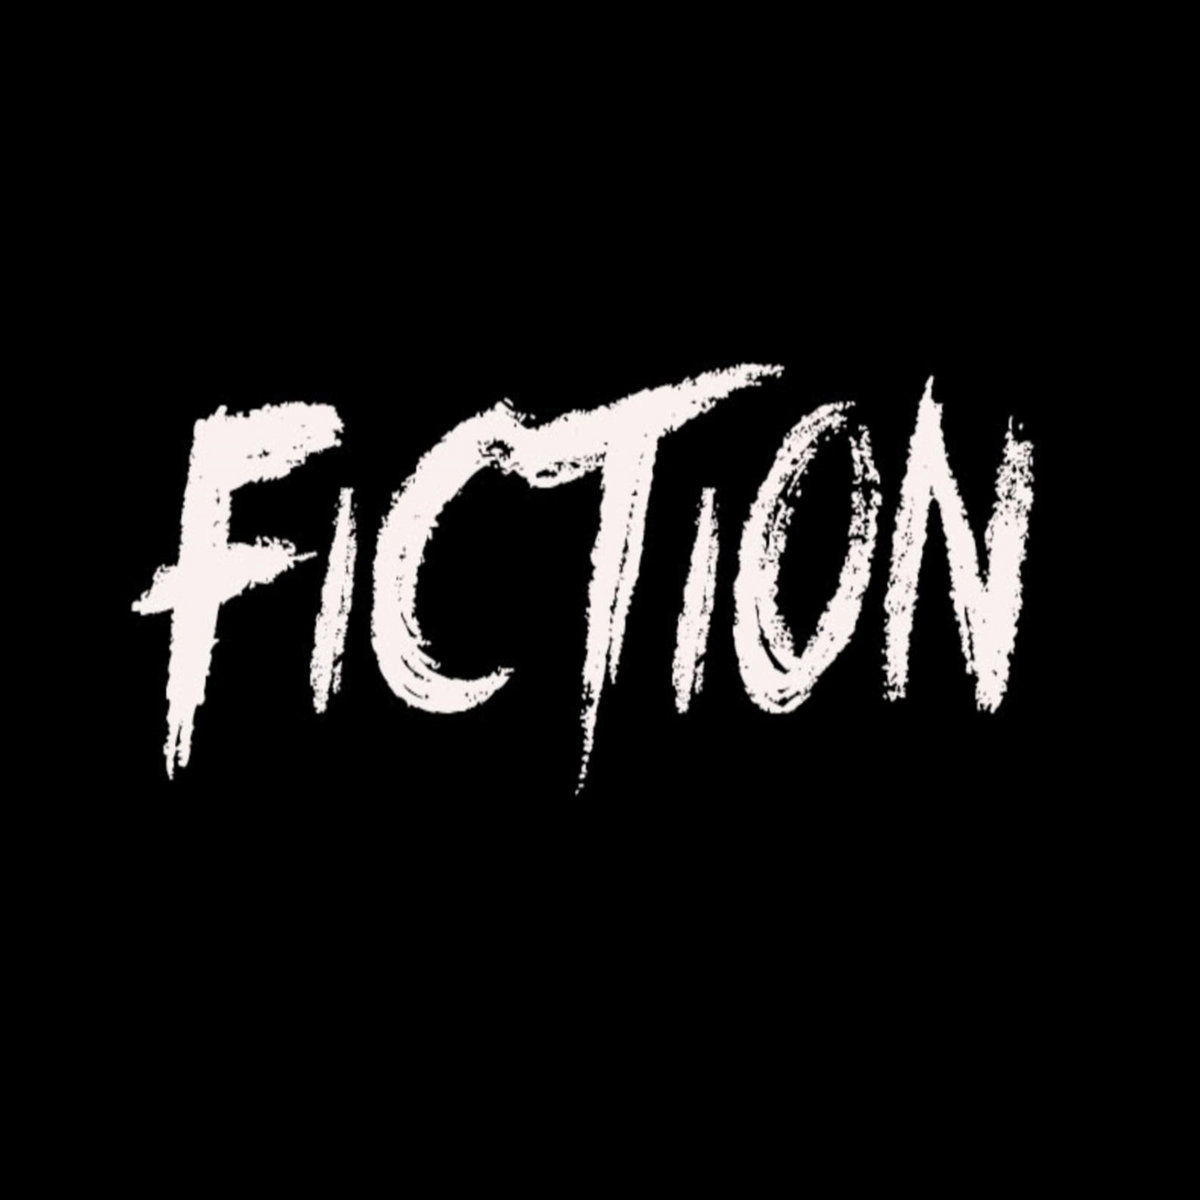 www.facebook.com/fictionbandny